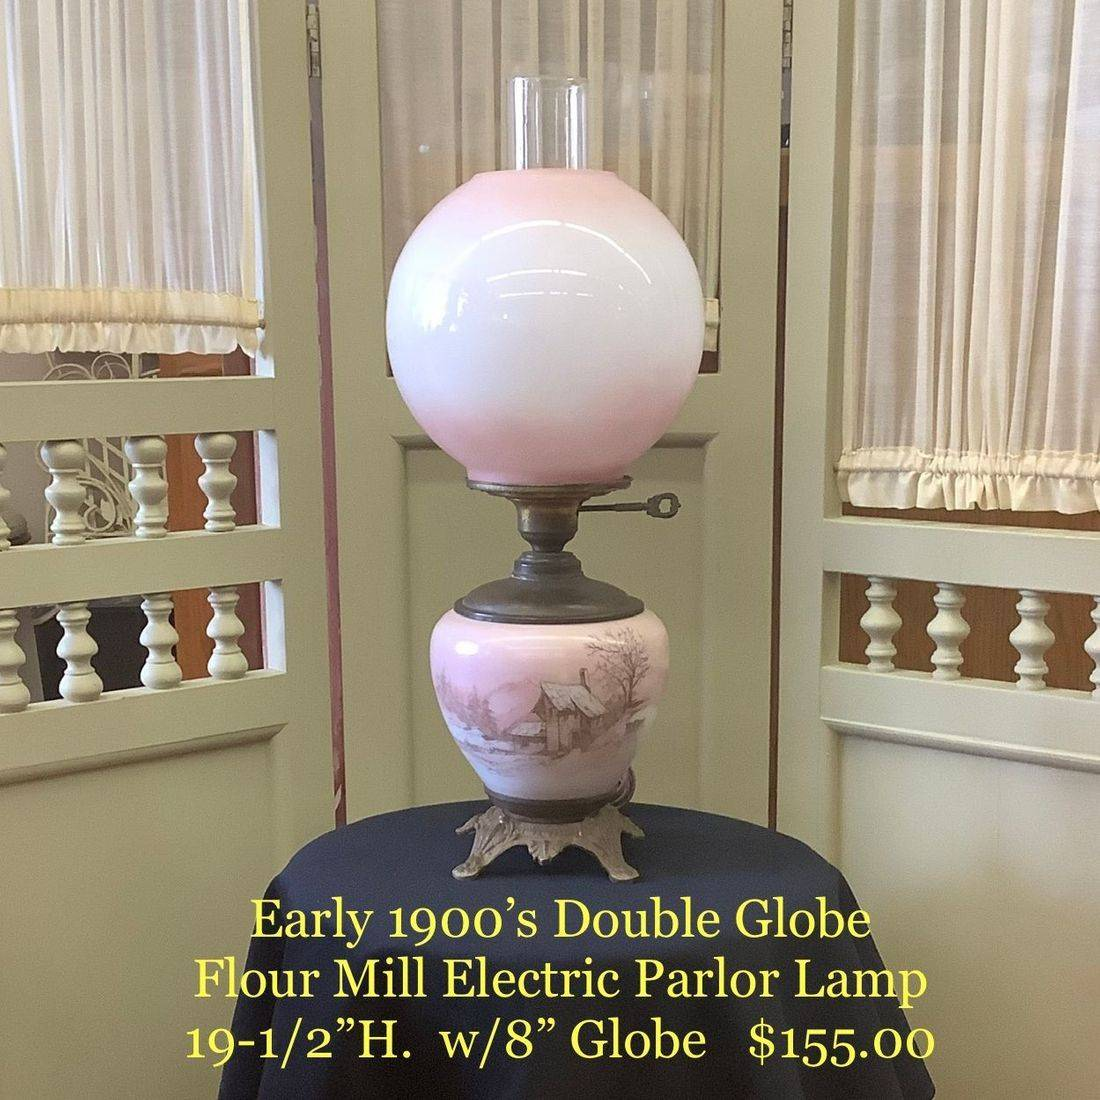 Early 1900's Double Globe Flour Mill Electric Parlor Lamp $155.00